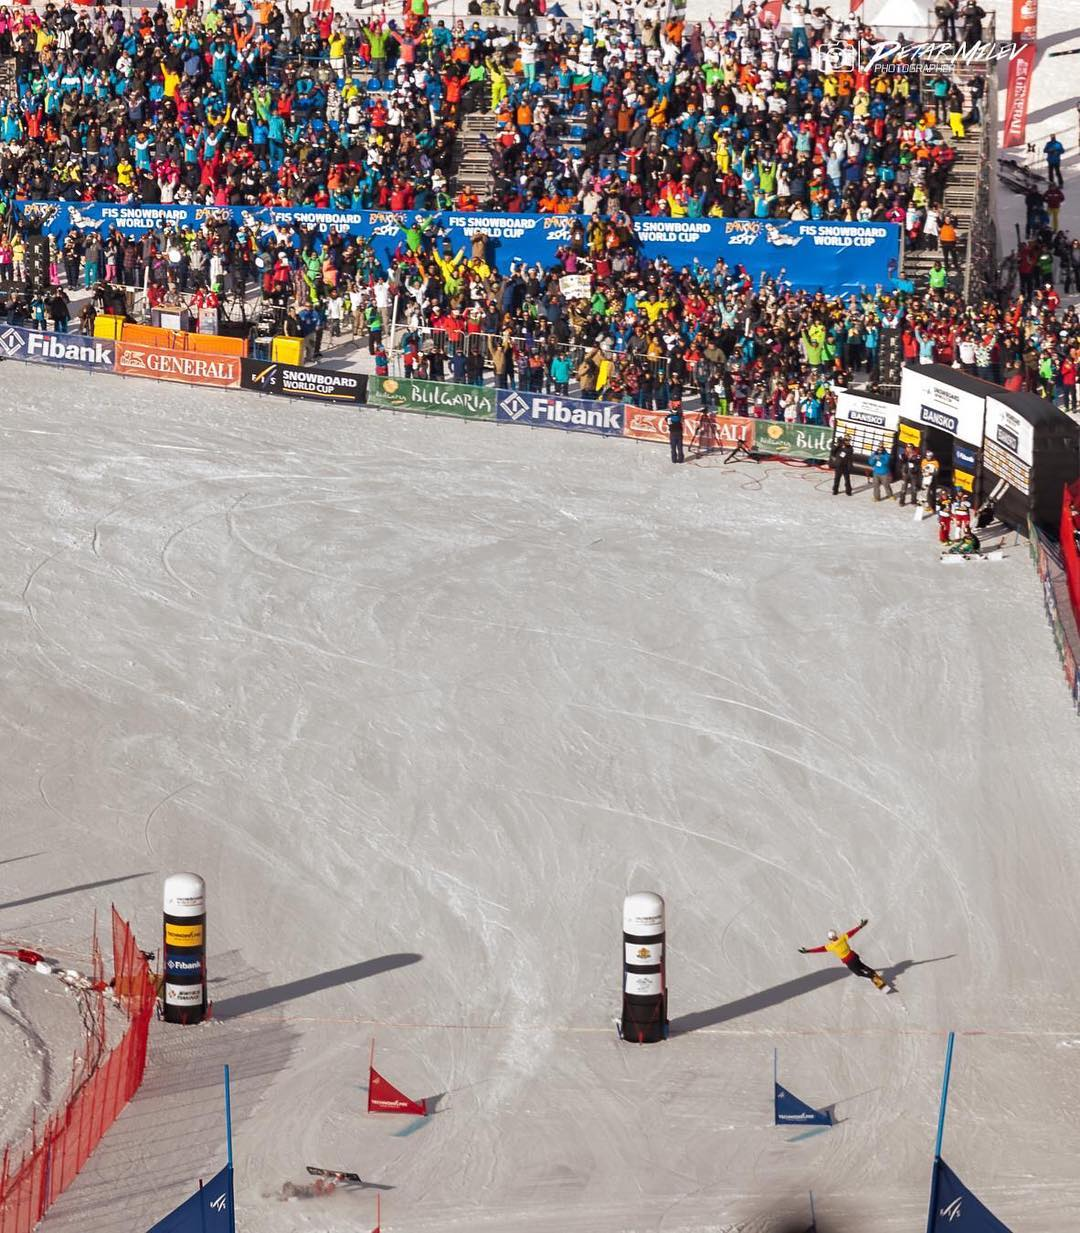 #throwbackthursday: This is how it looks when Bulgarian hero @radoyankov wins a @fissnowboard worldcup in front of his fans while I am checking the snow quality . Though getting second there was still awesome. Needless to say that I am looking forward to this winters worldcup in my home town @engadinscuol !!!